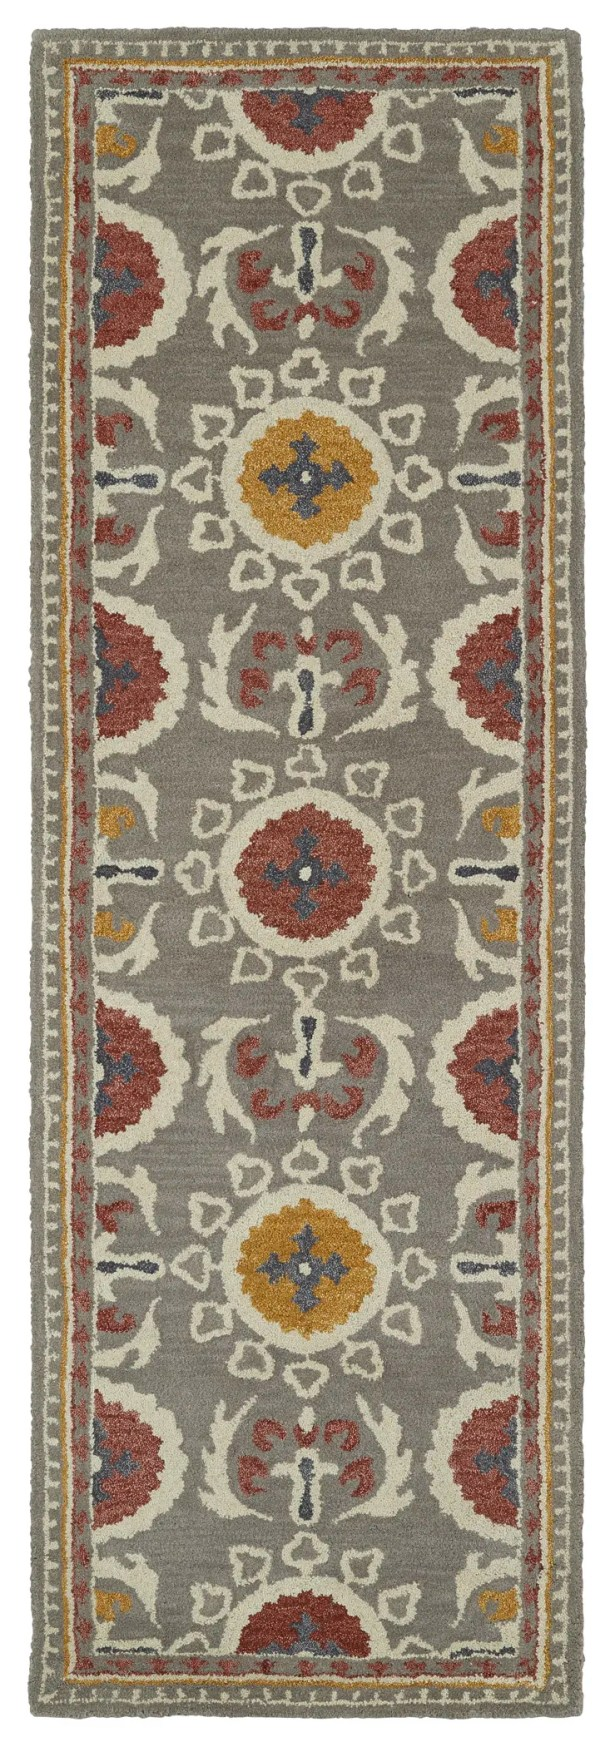 Tunstall Hand-Tufted Gray Area Rug Rug Size: Runner 2'6